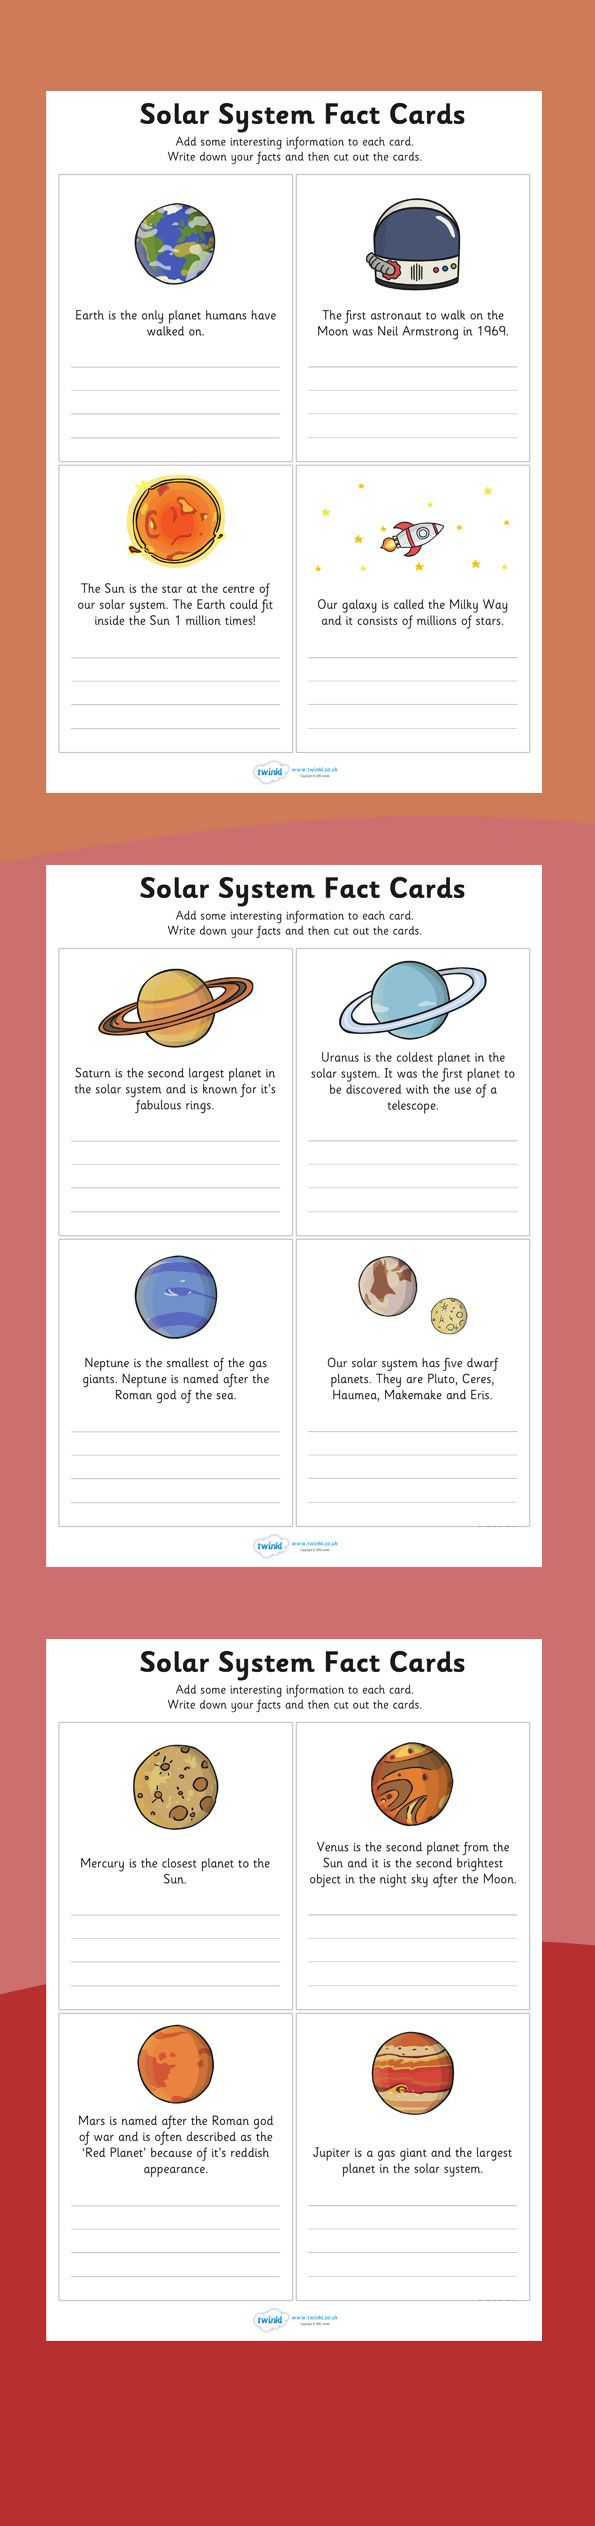 solar system fact cards-#4